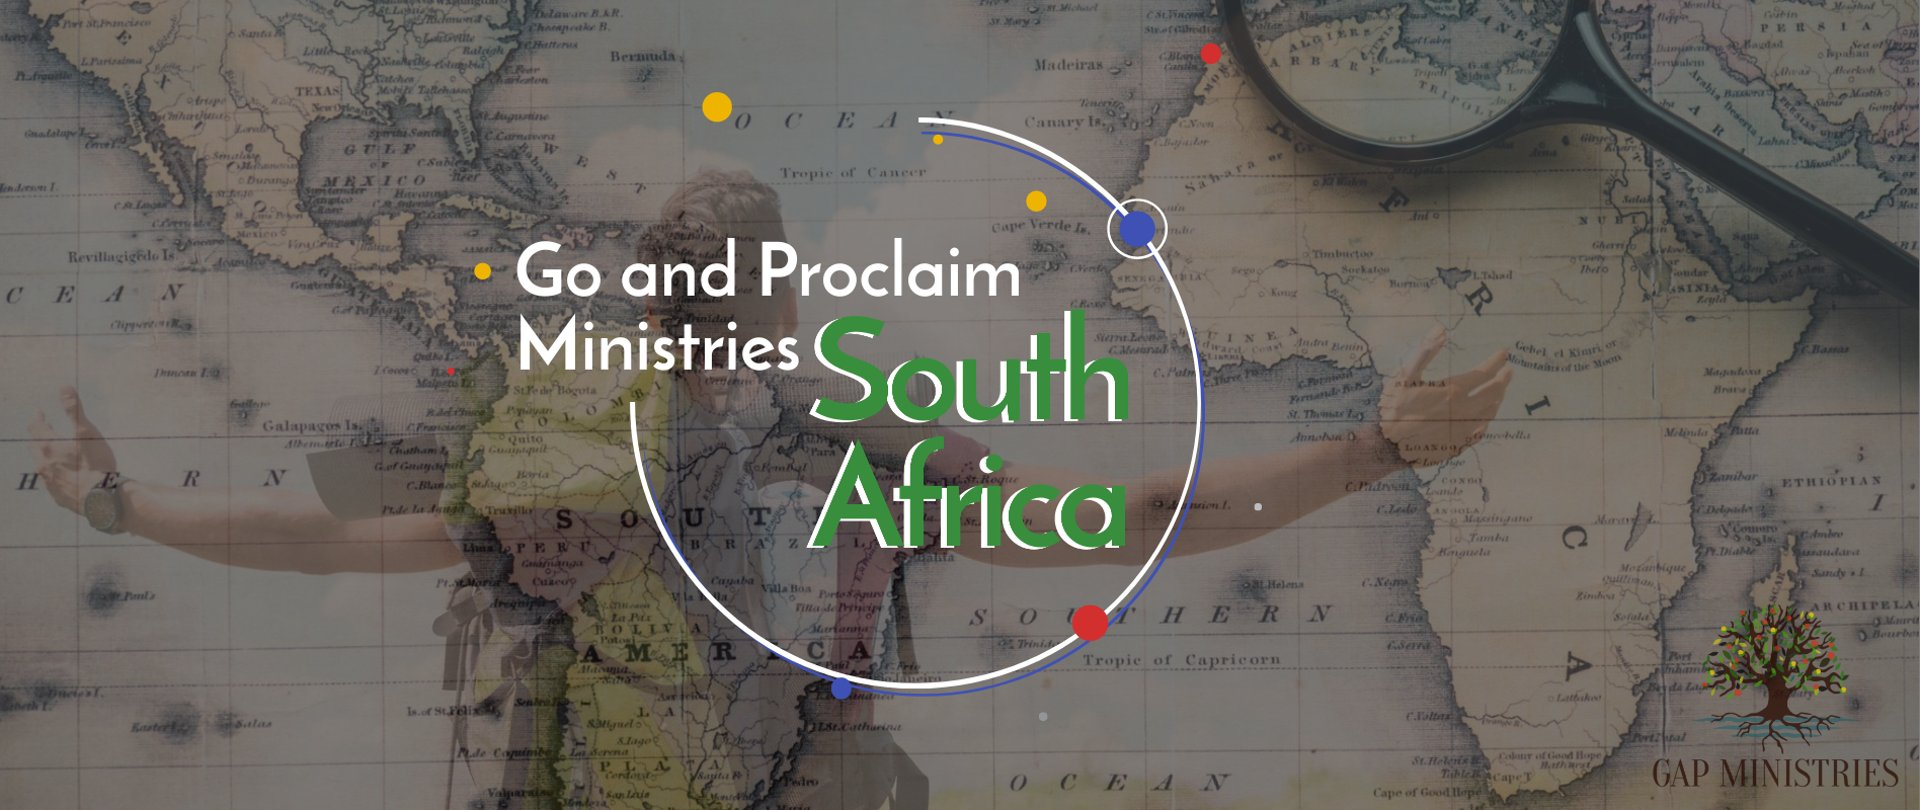 Go and Proclaim Ministries South Africa